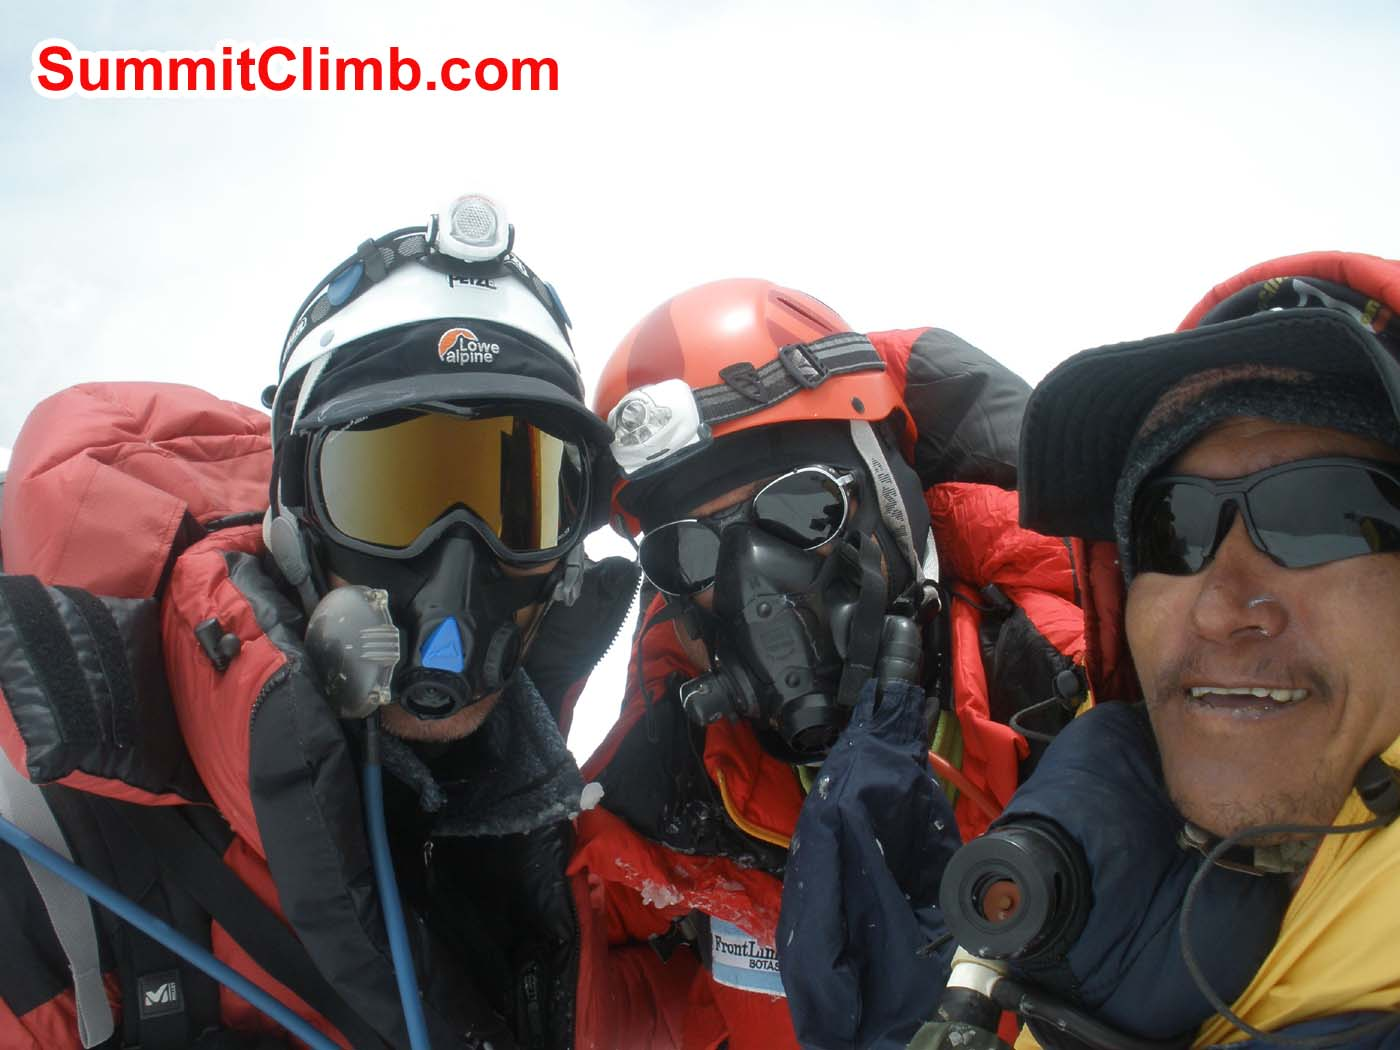 Pascal Tiercelin, Angel Armesto, and Pemba Sherpa on the Summit of Cho Oyu, 24 May, 2014